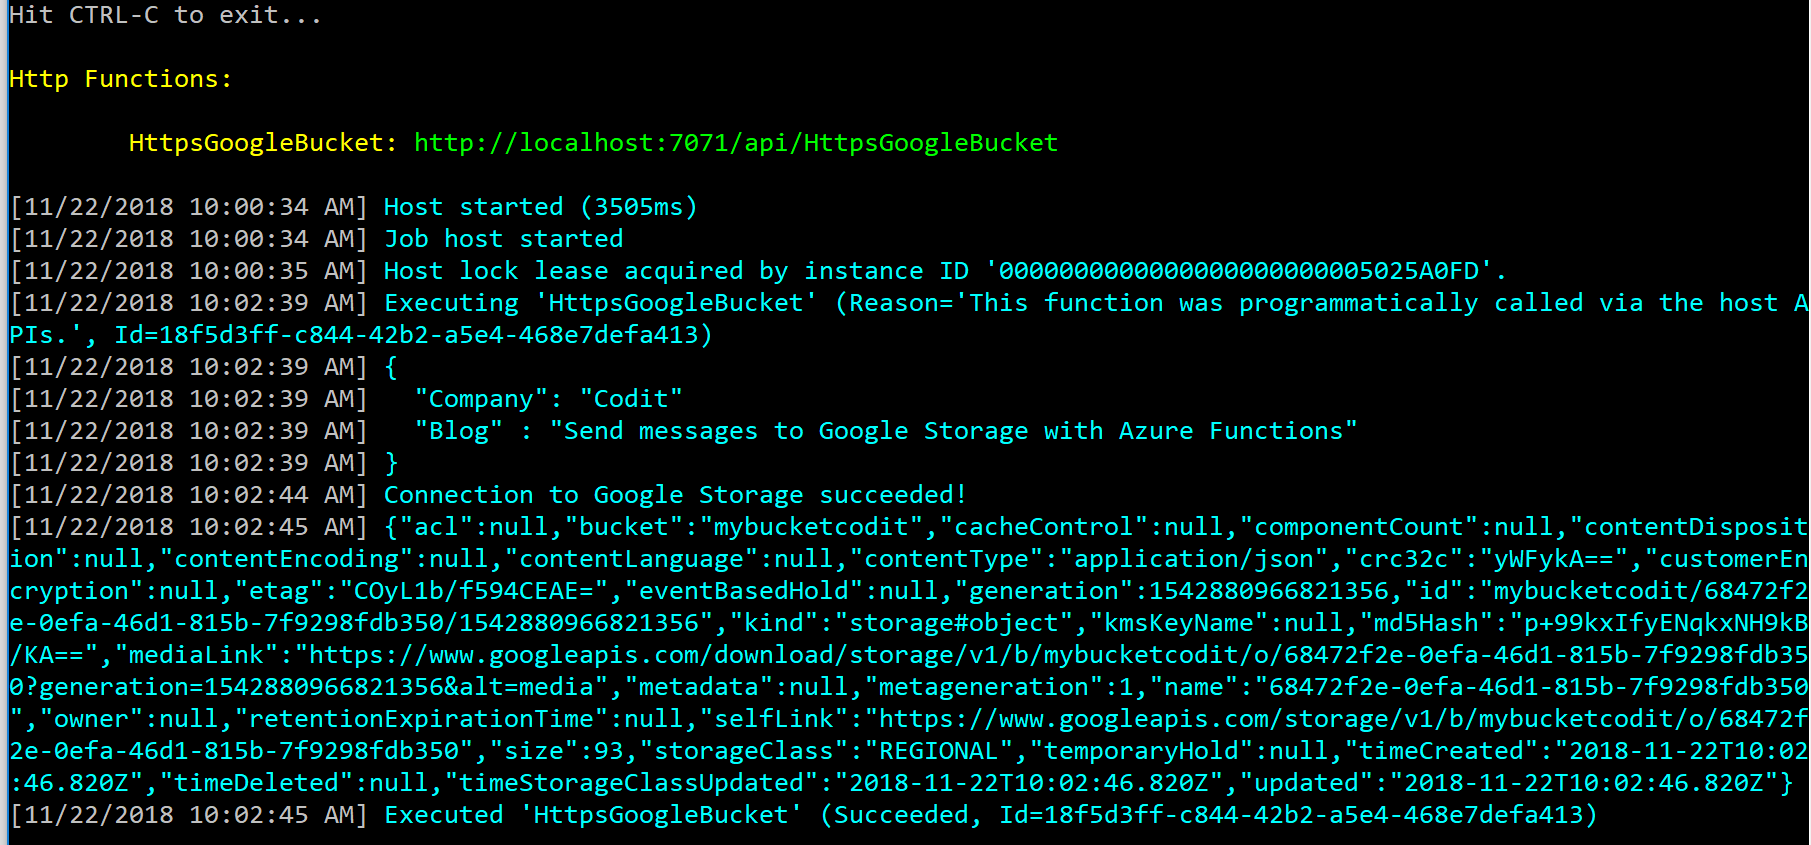 Send messages to Google Storage with Azure Functions - Picture 6